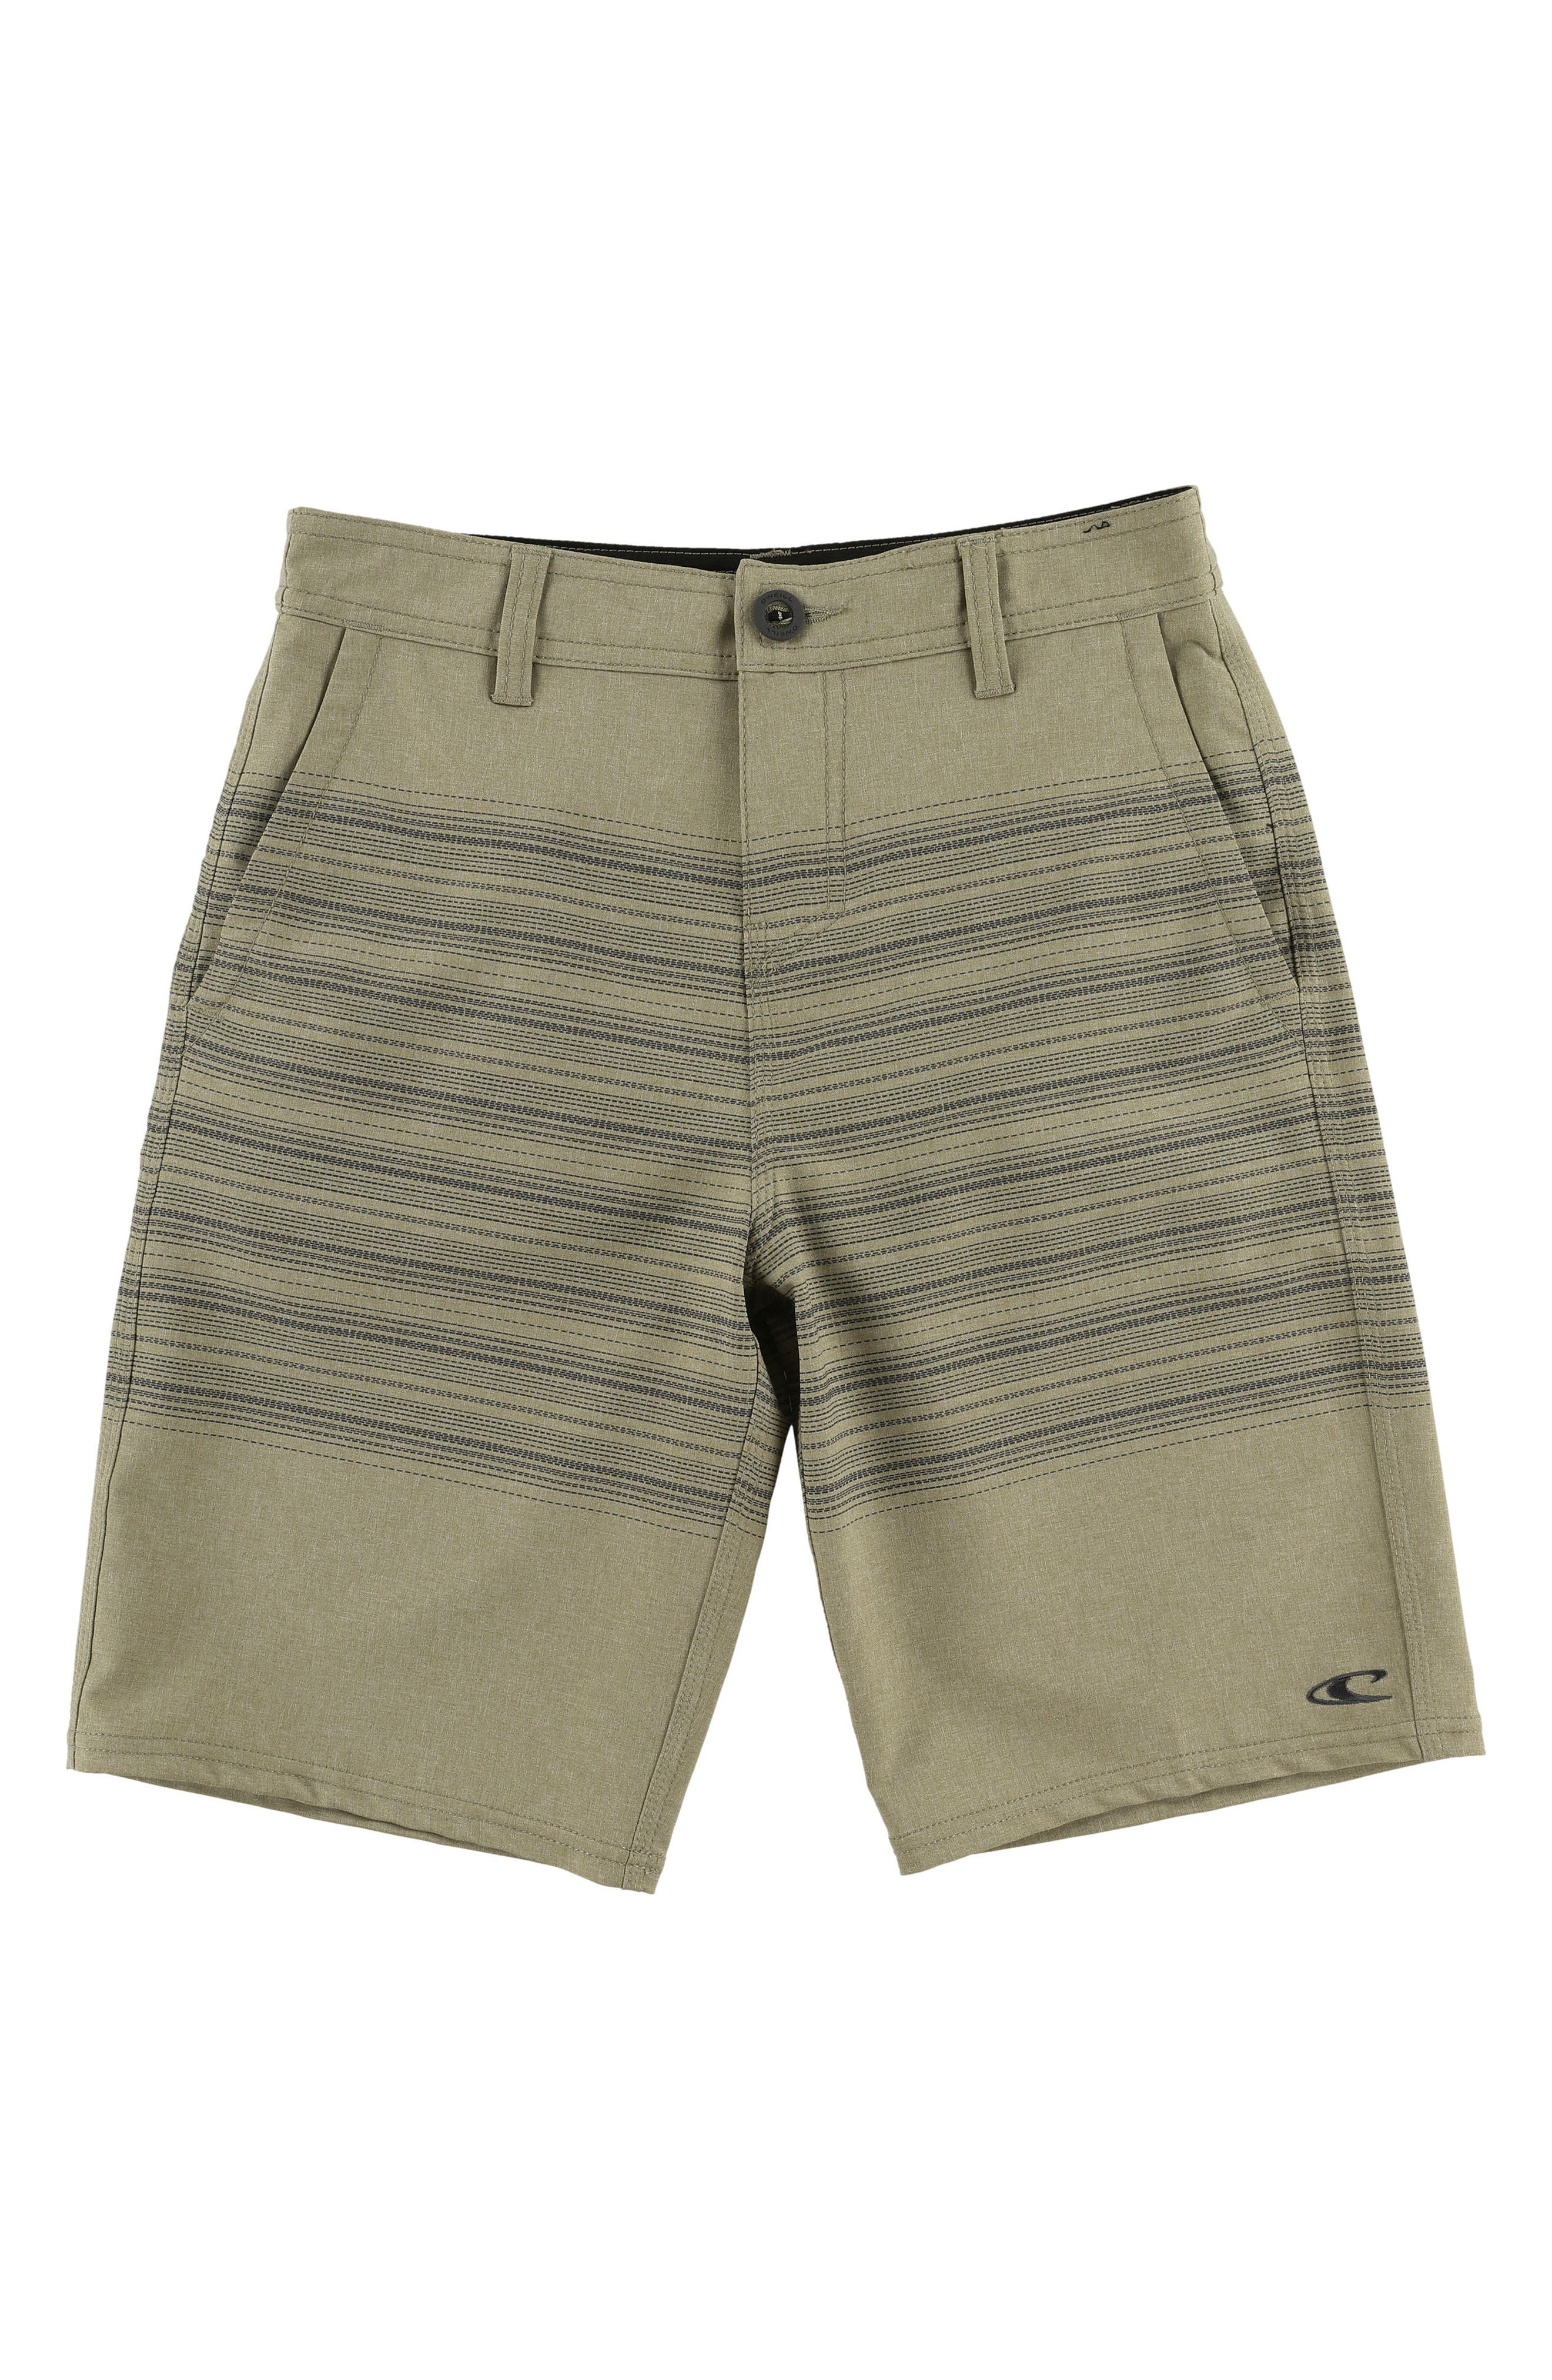 Loaded Schematic Hybrid Board Shorts,                         Main,                         color, 251